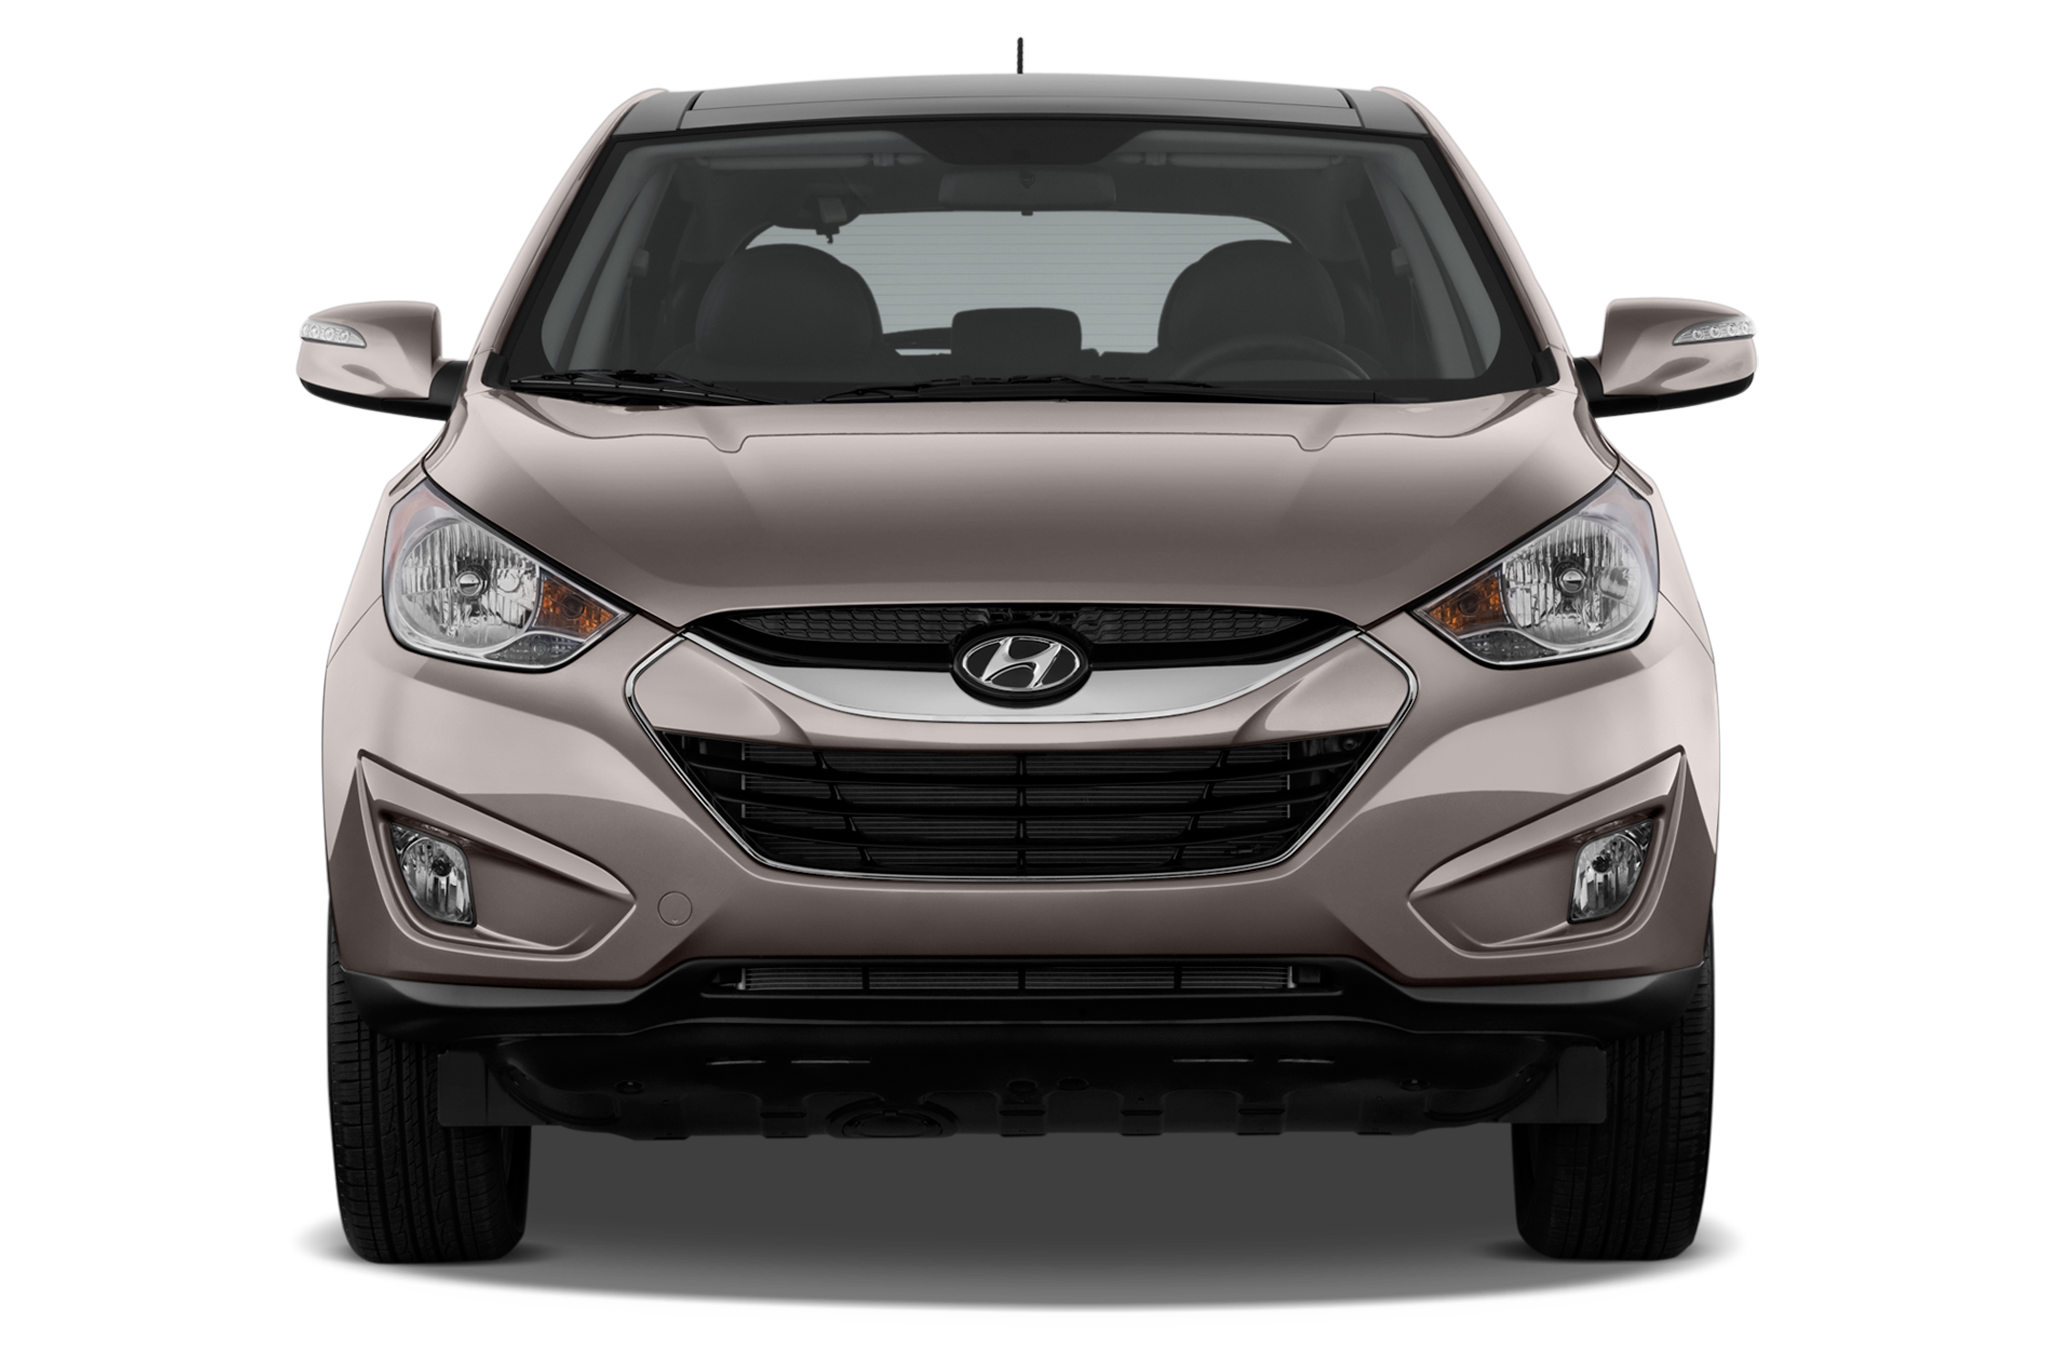 2010 hyundai tucson limited fwd hyundai crossover suv. Black Bedroom Furniture Sets. Home Design Ideas